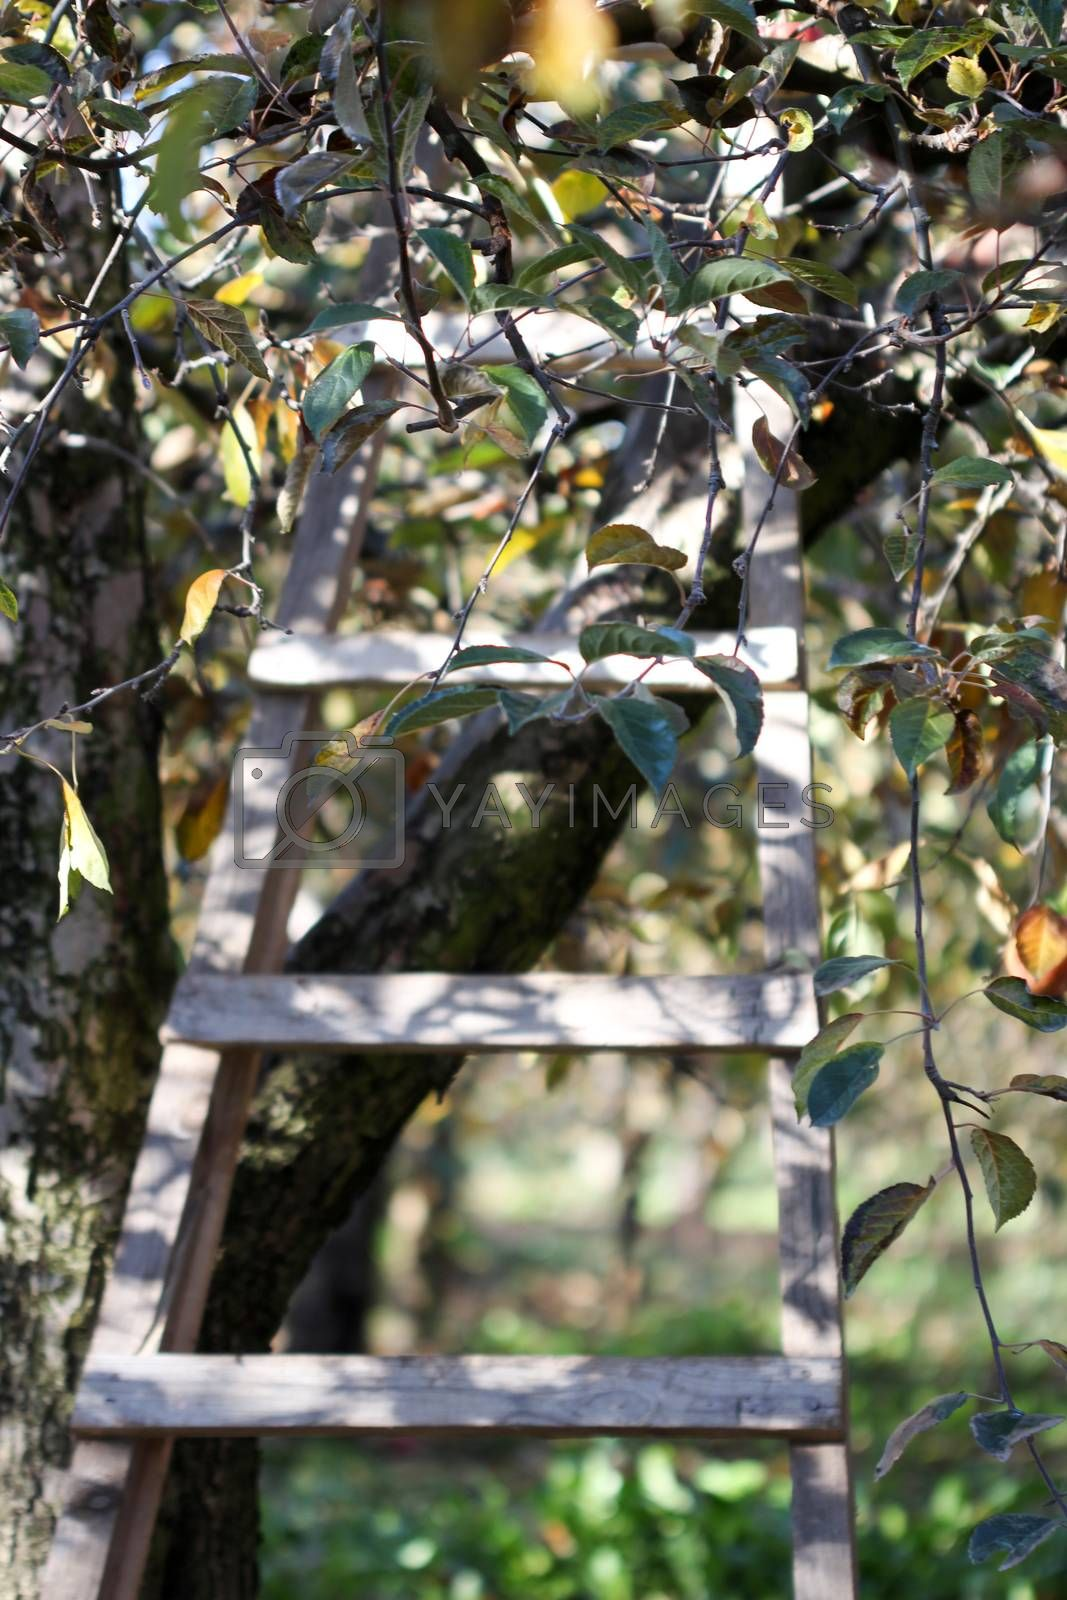 Royalty free image of Ladder in Orchard in autumn by nehru